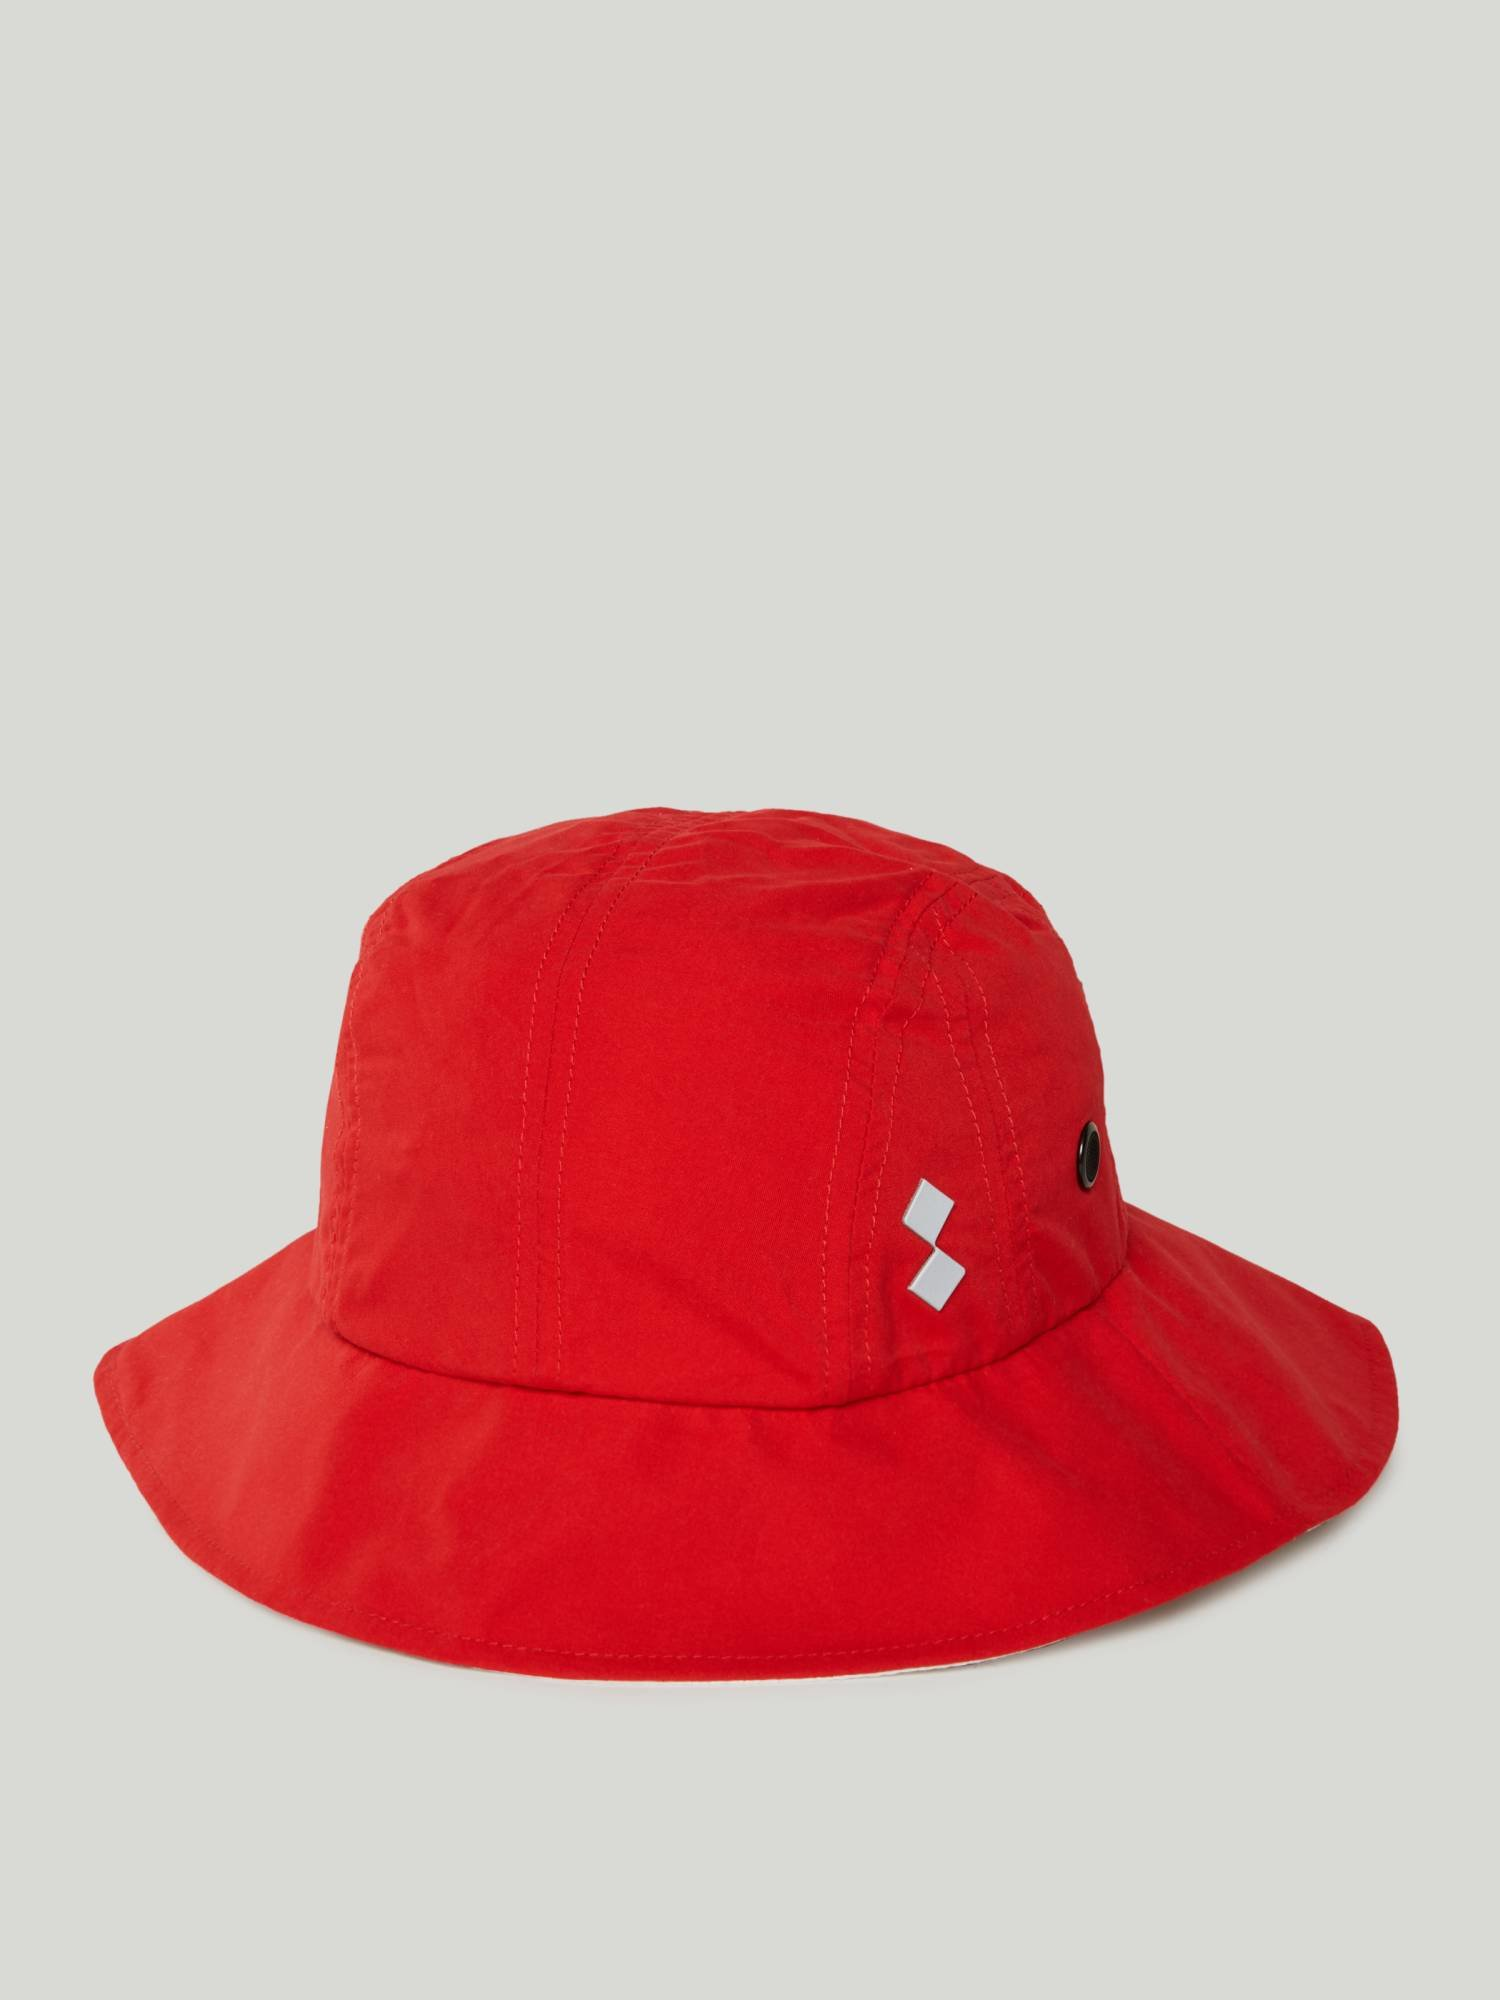 Hat A207 - Rojo Slam